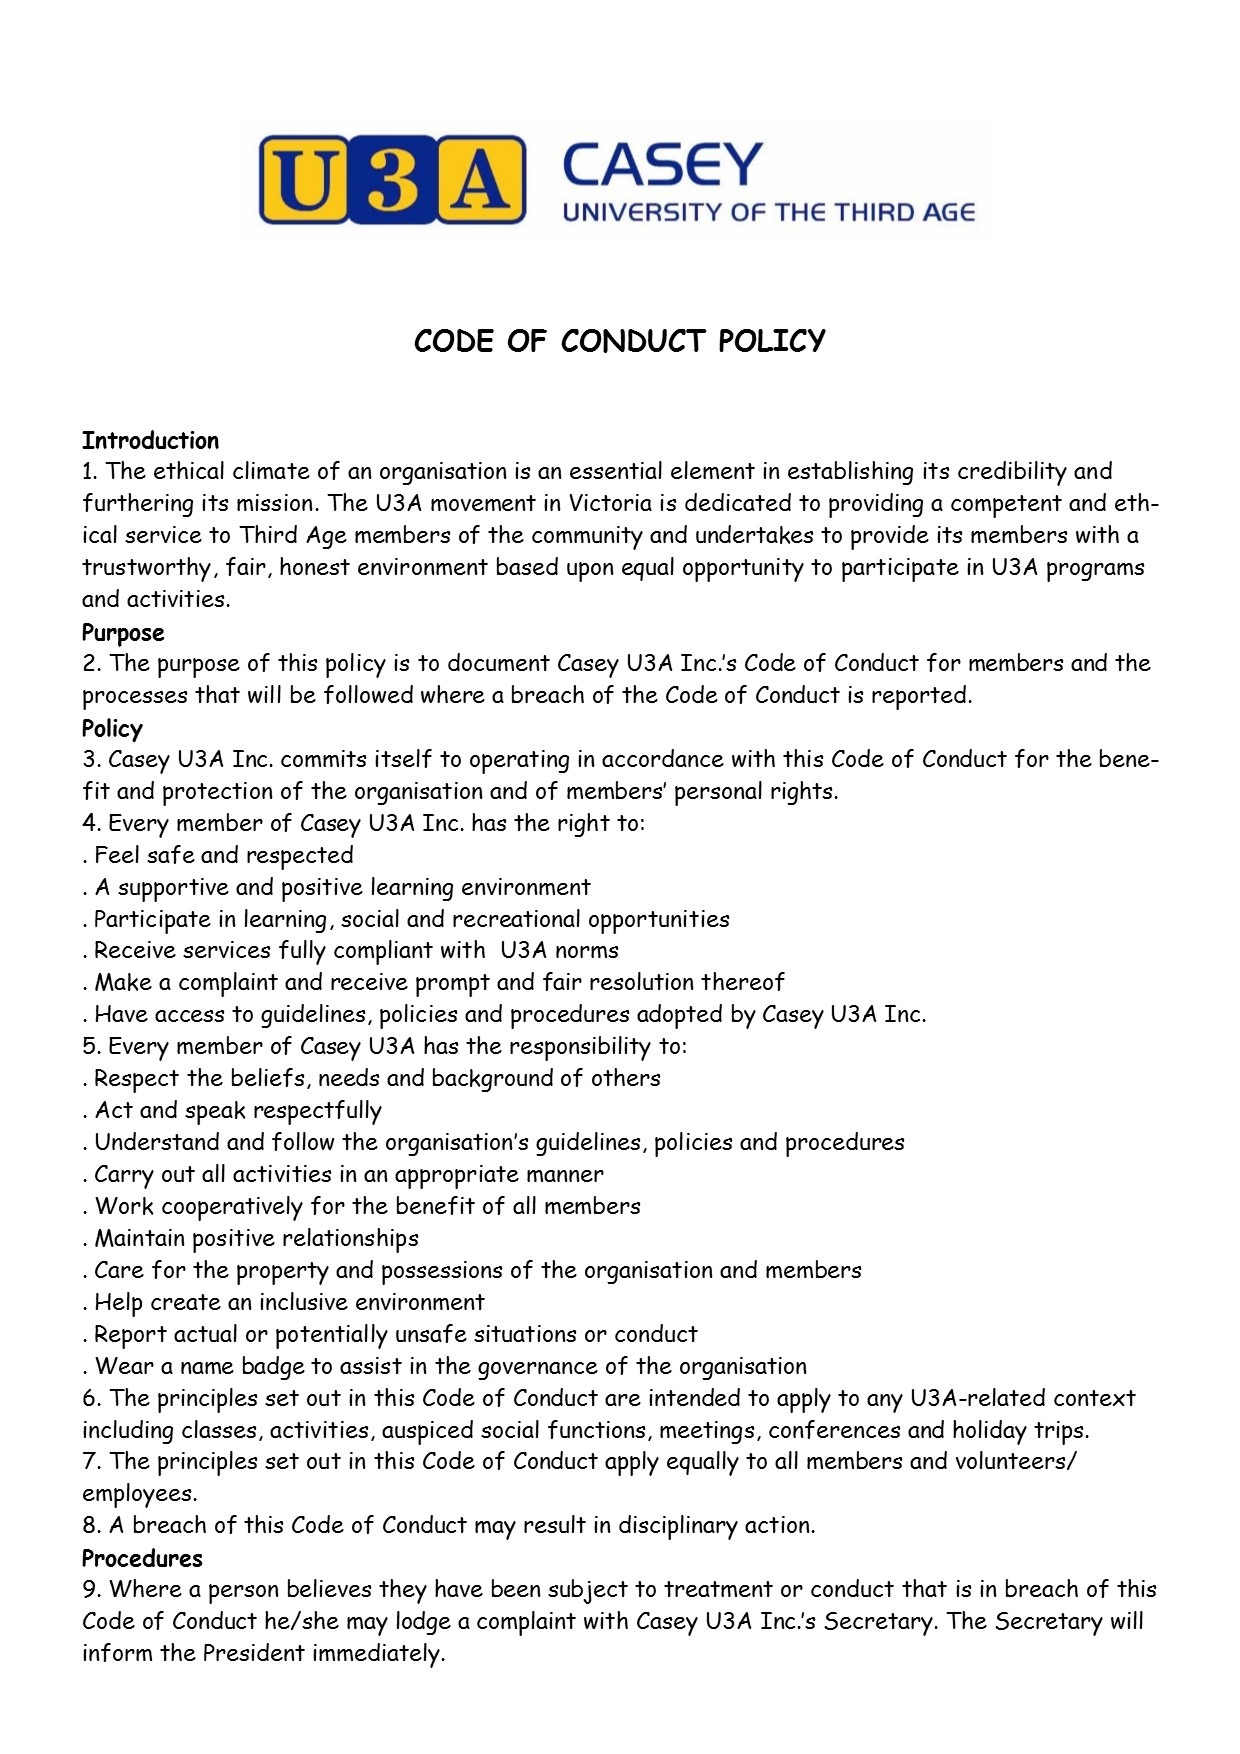 Code of Conduct Policy pg 1